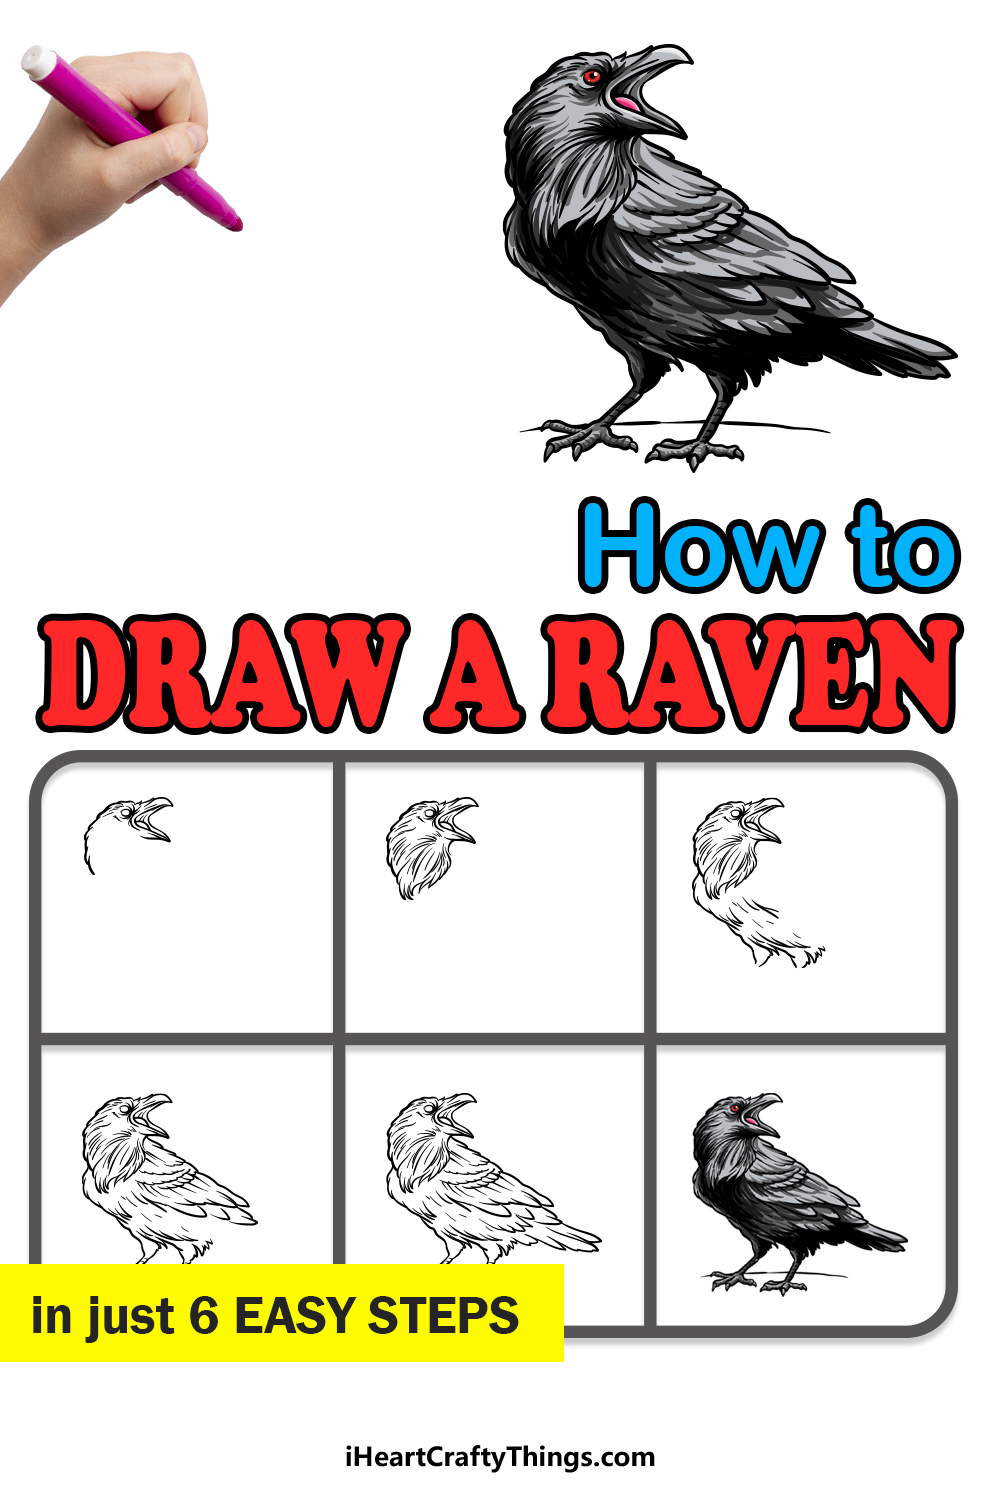 how to draw a raven in 6 easy steps